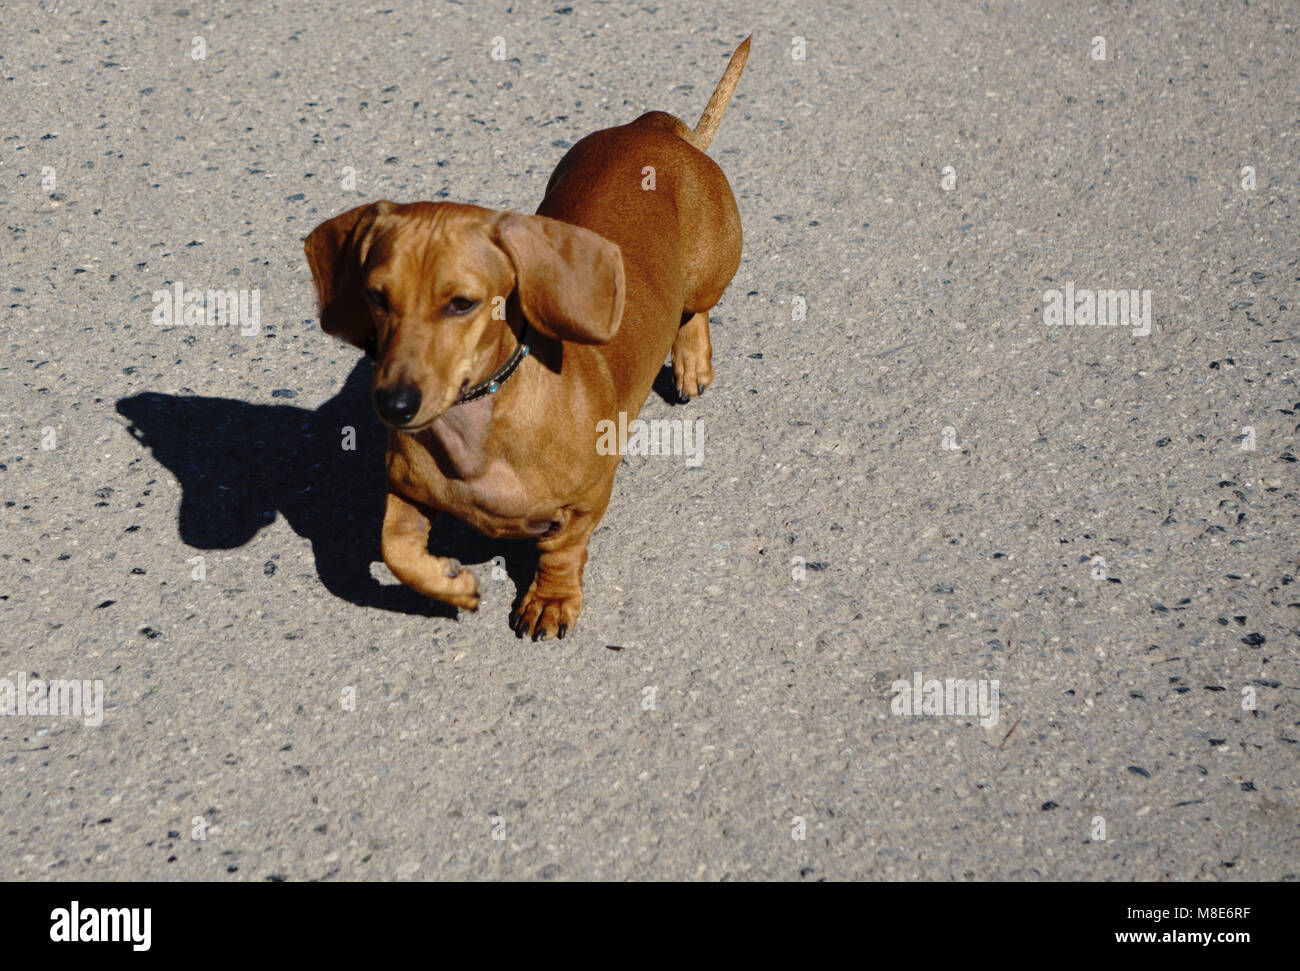 Four dachshunds on the dog show - Stock Image